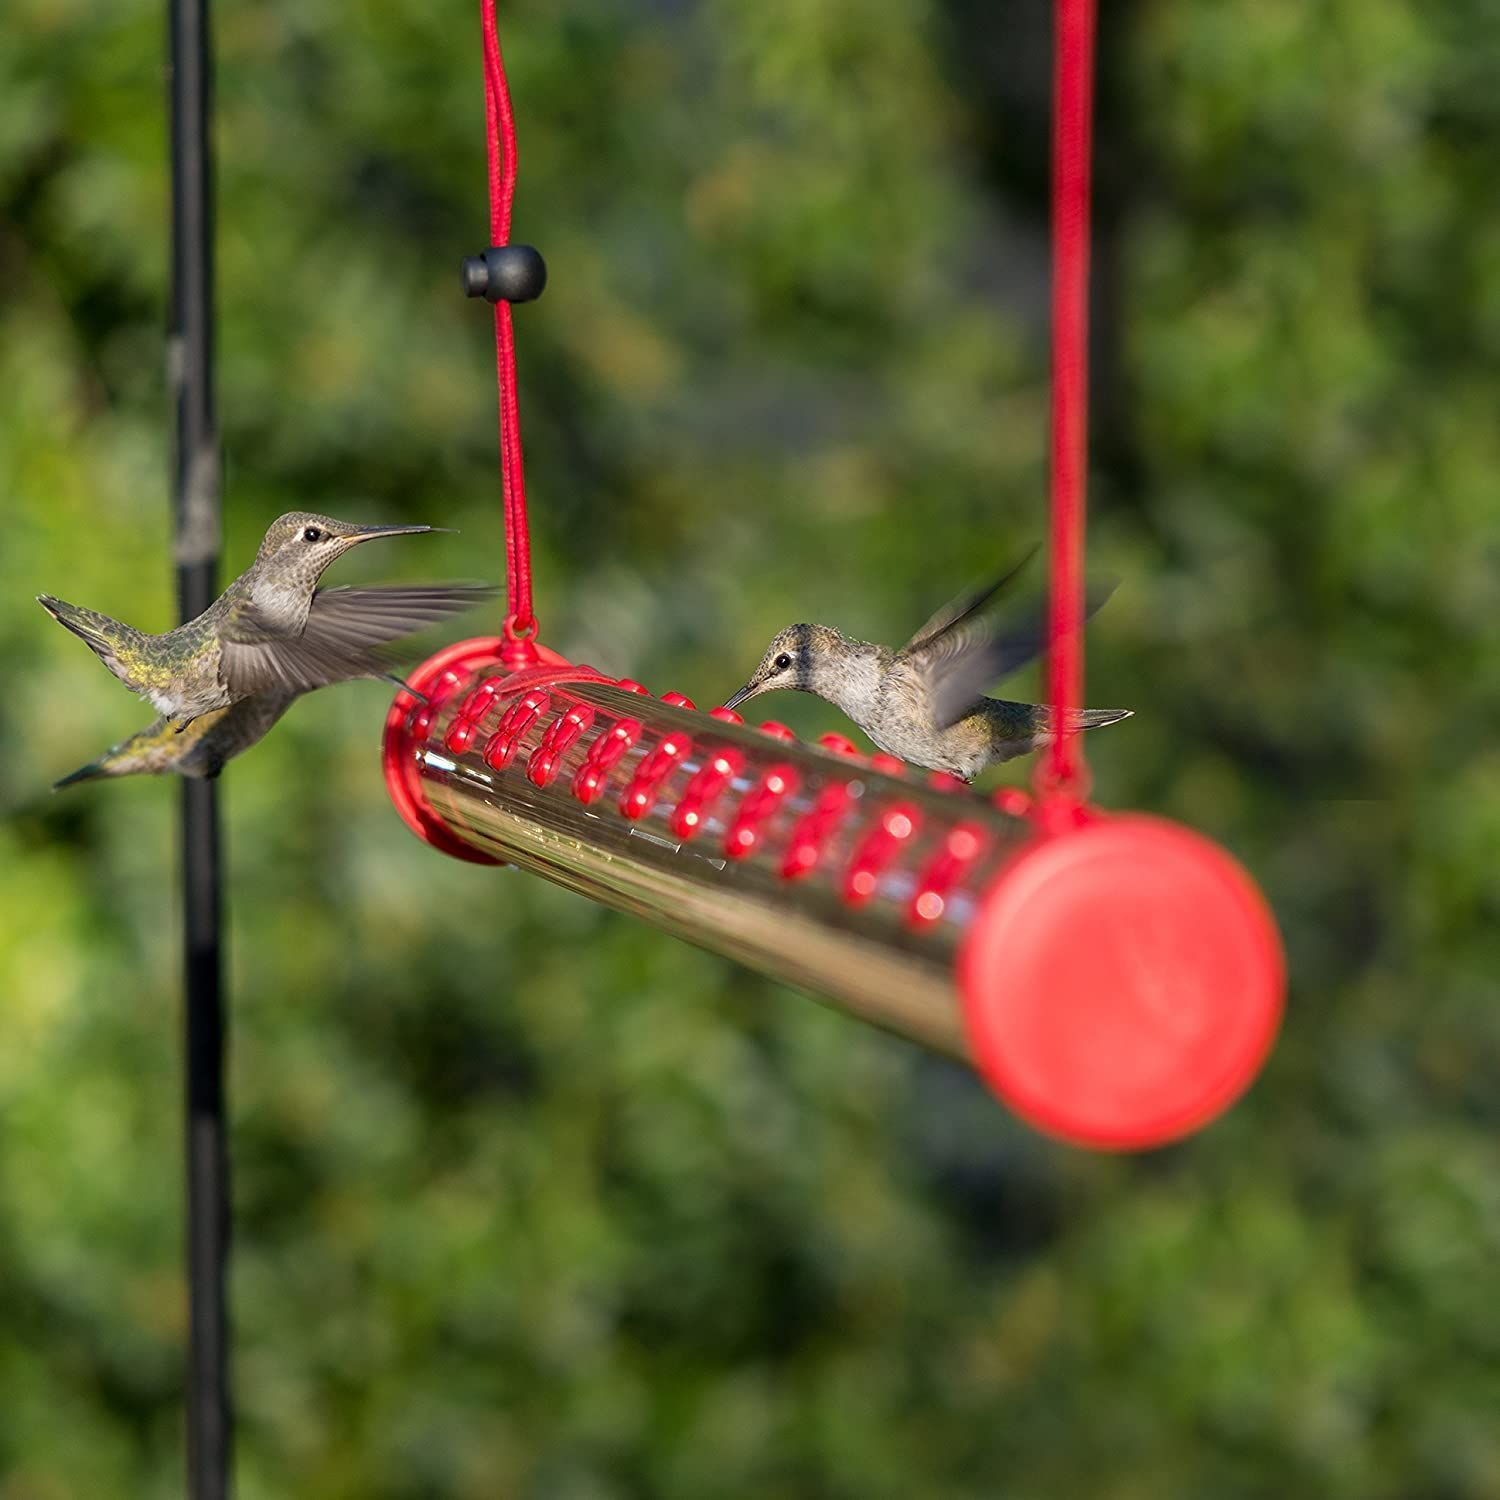 🔥30% OFF🔥Bob's Best Hummingbird Feeder - Buy 2 Give Free Cleaning Brush and Hook